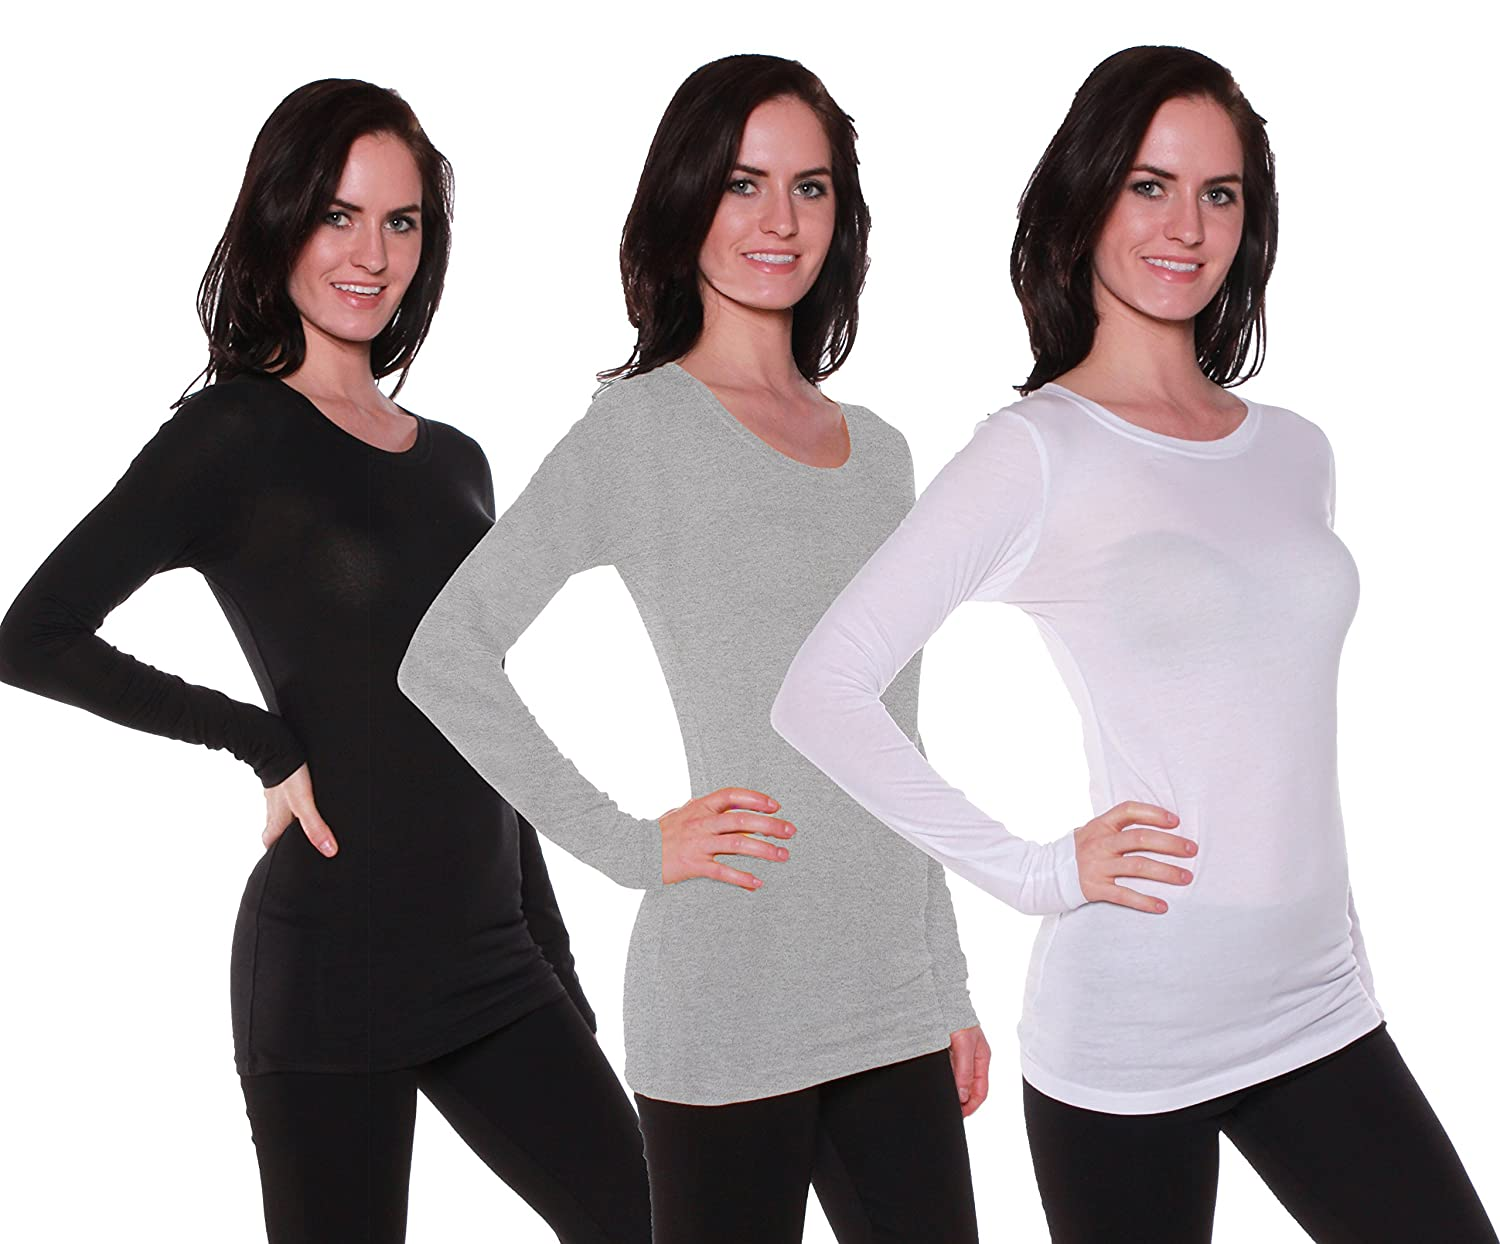 Active Products SHIRT レディース B06W9JN5S6 Small 3 Pack - White, H Grey, Black 3 Pack - White, H Grey, Black Small